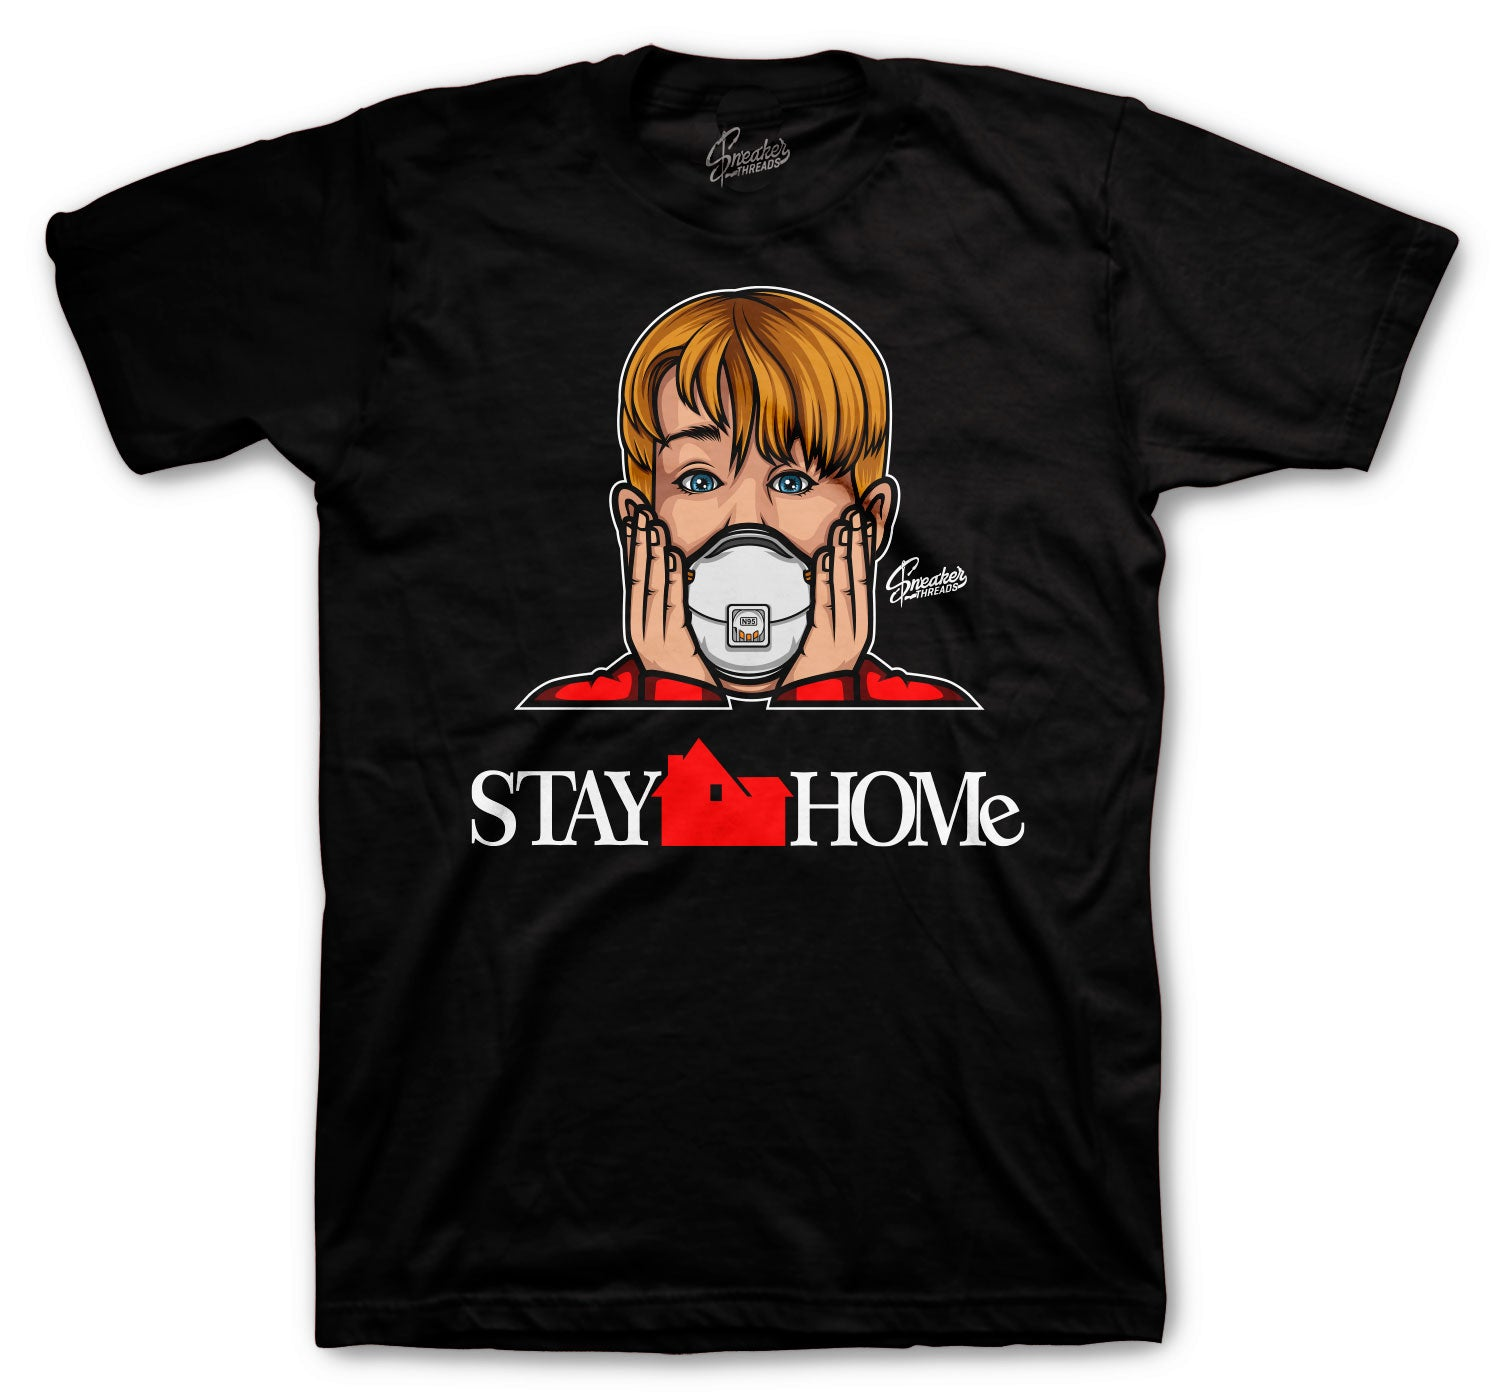 Yeezy Bred 350 Shirt - Stay Home - Black